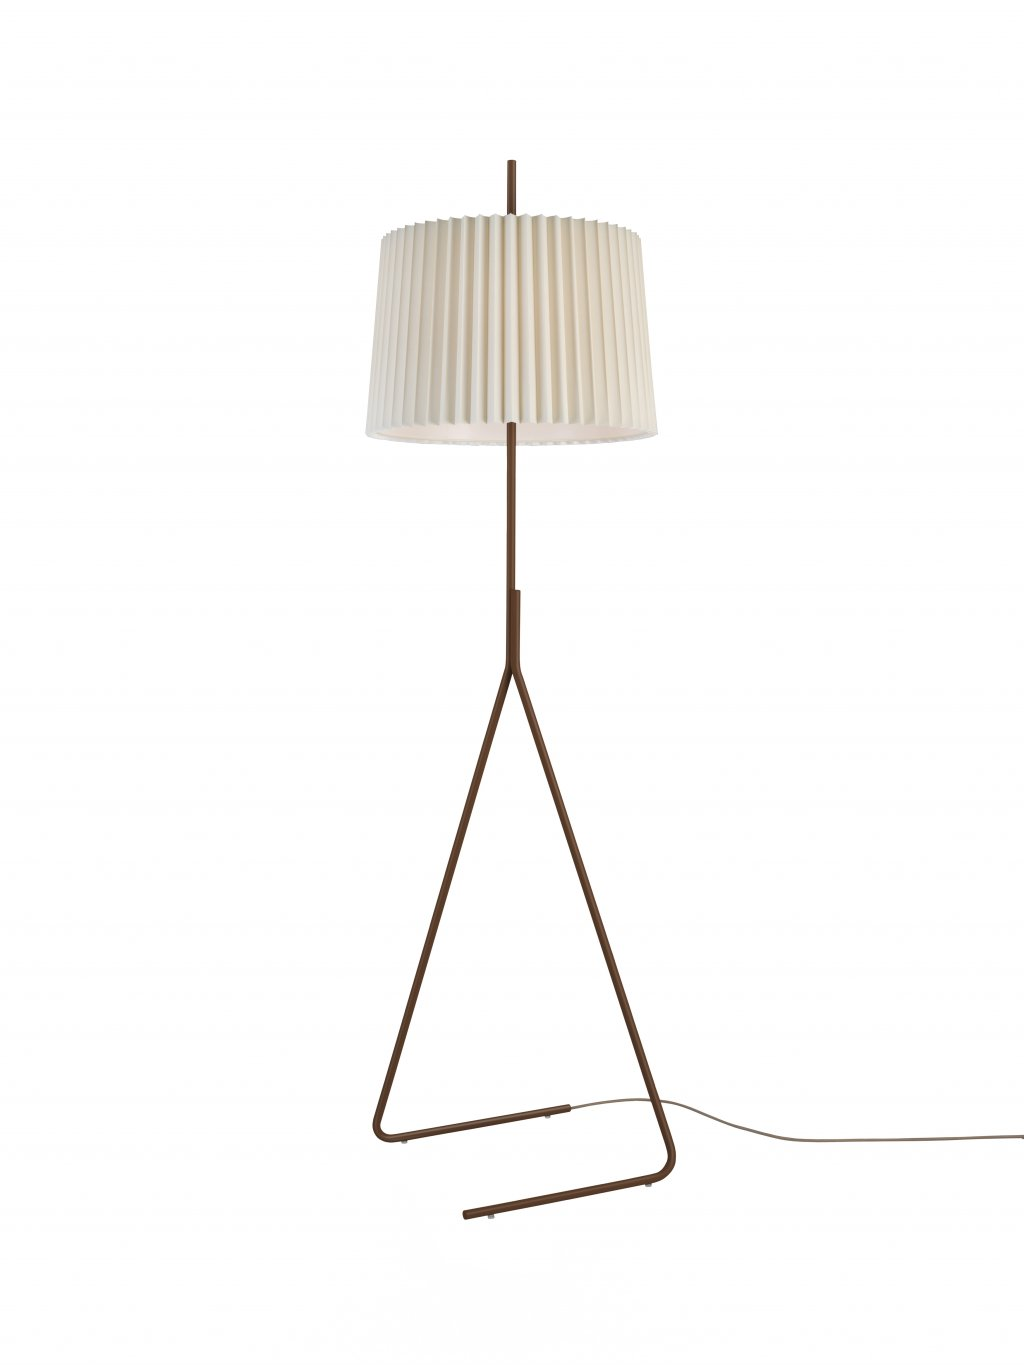 Fliegenbein Floor Lamp, 1957